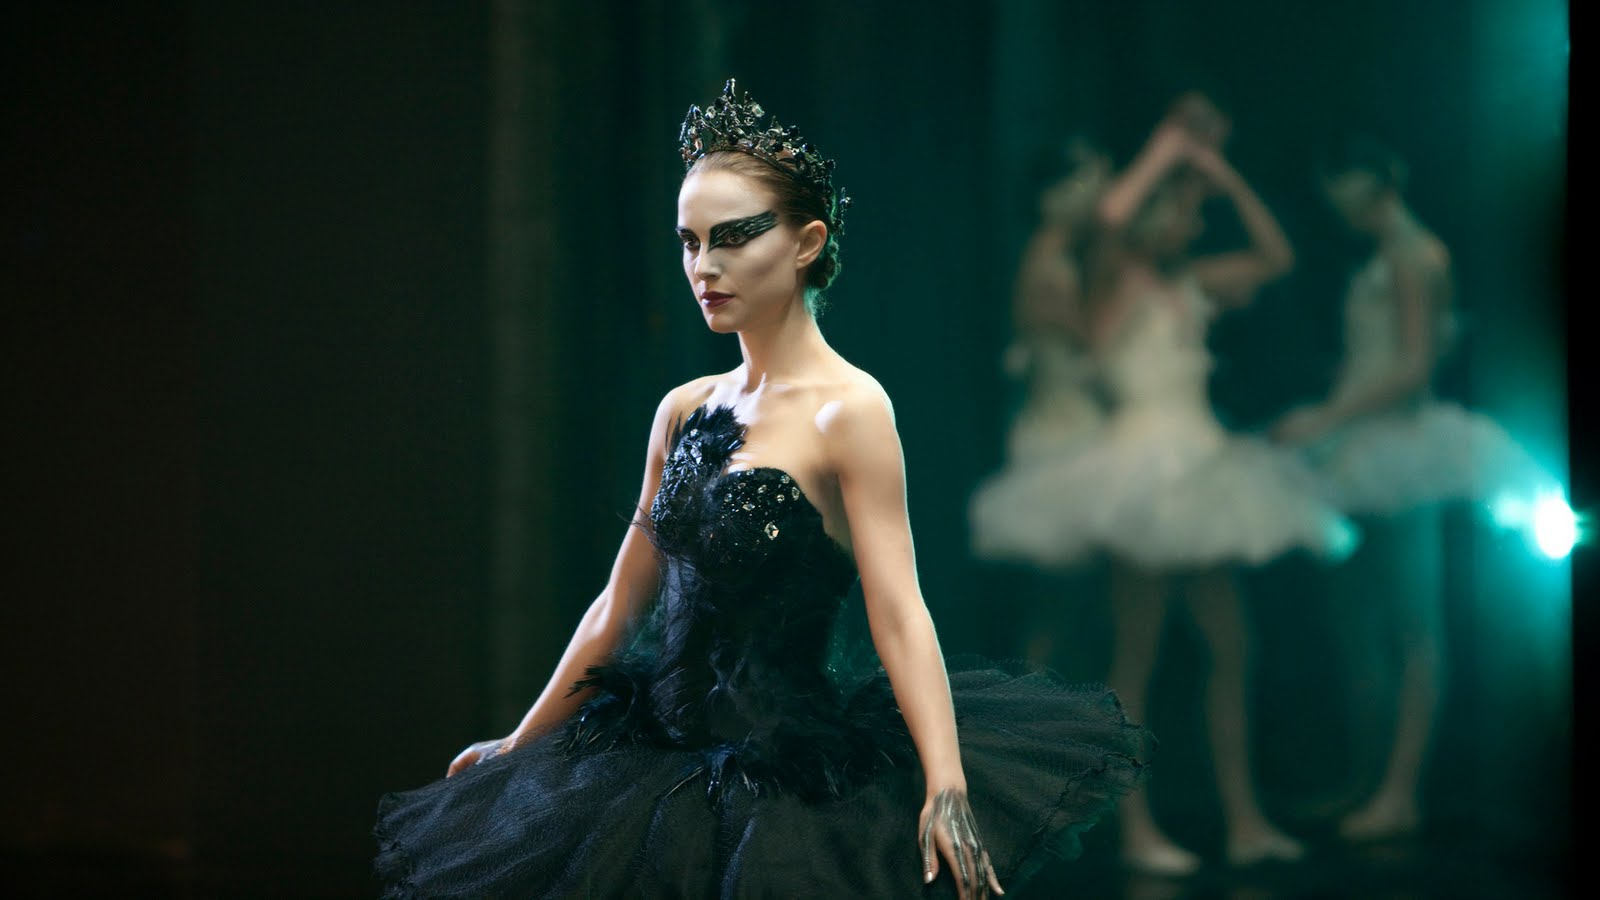 http://4.bp.blogspot.com/-VBlpXBiDCXo/TeFL97ji0OI/AAAAAAAAALE/q7jr7nz6kkQ/s1600/11+Black-Swan+Fot-Wallpaper-Photo-Natalie-Portman-as-Nina-Sayers-6.jpg